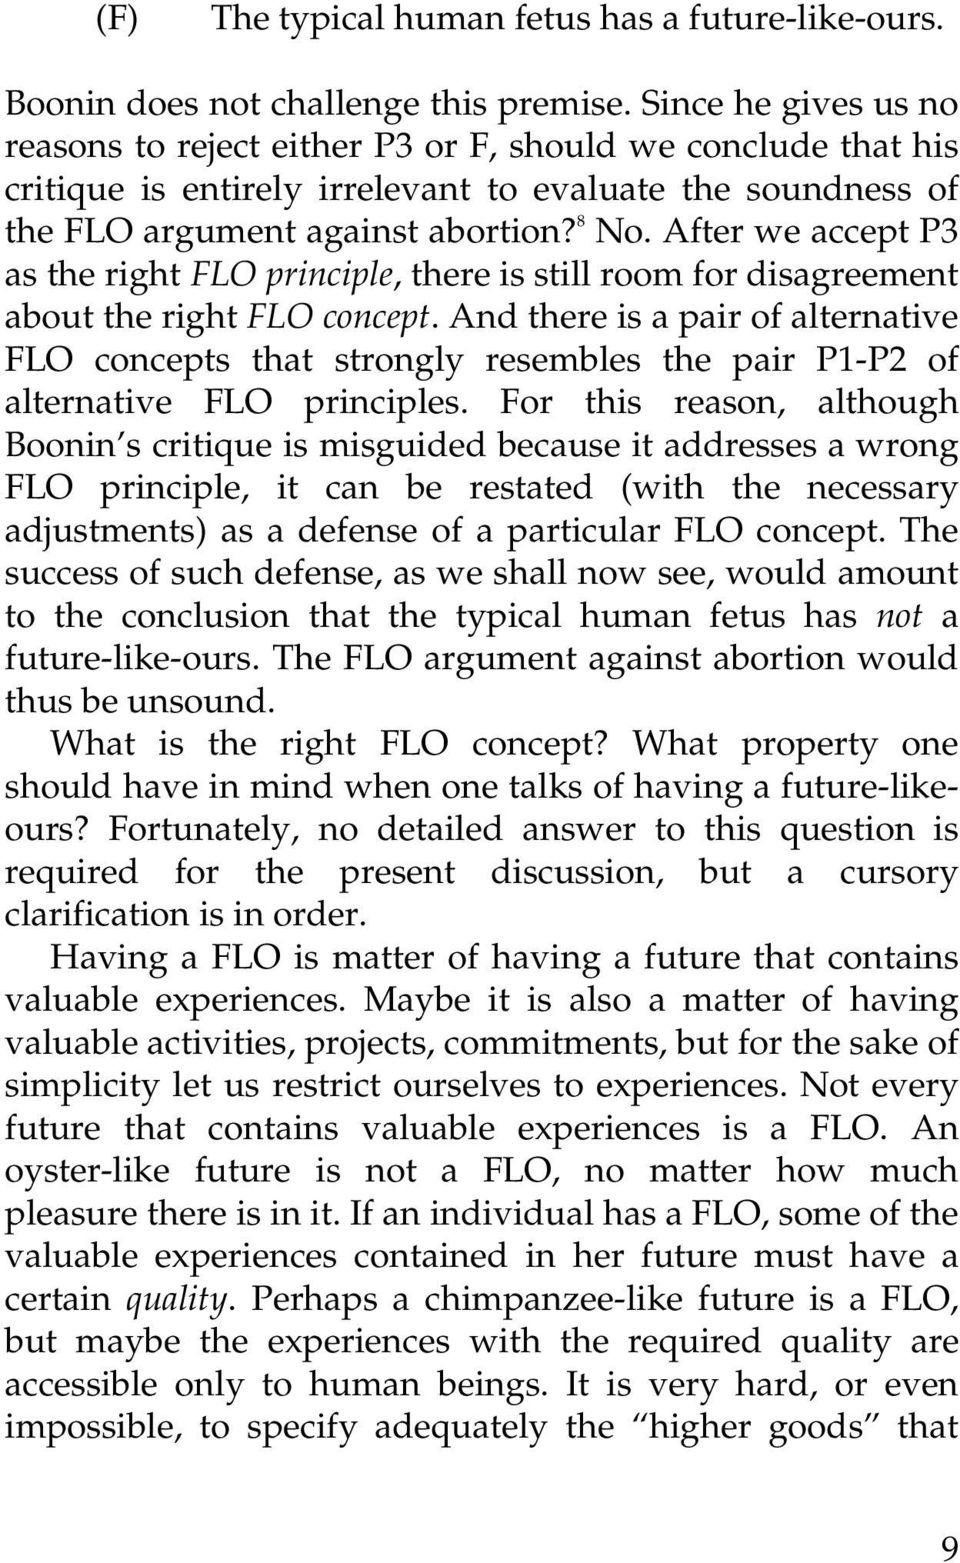 After we accept P3 as the right FLO principle, there is still room for disagreement about the right FLO concept.